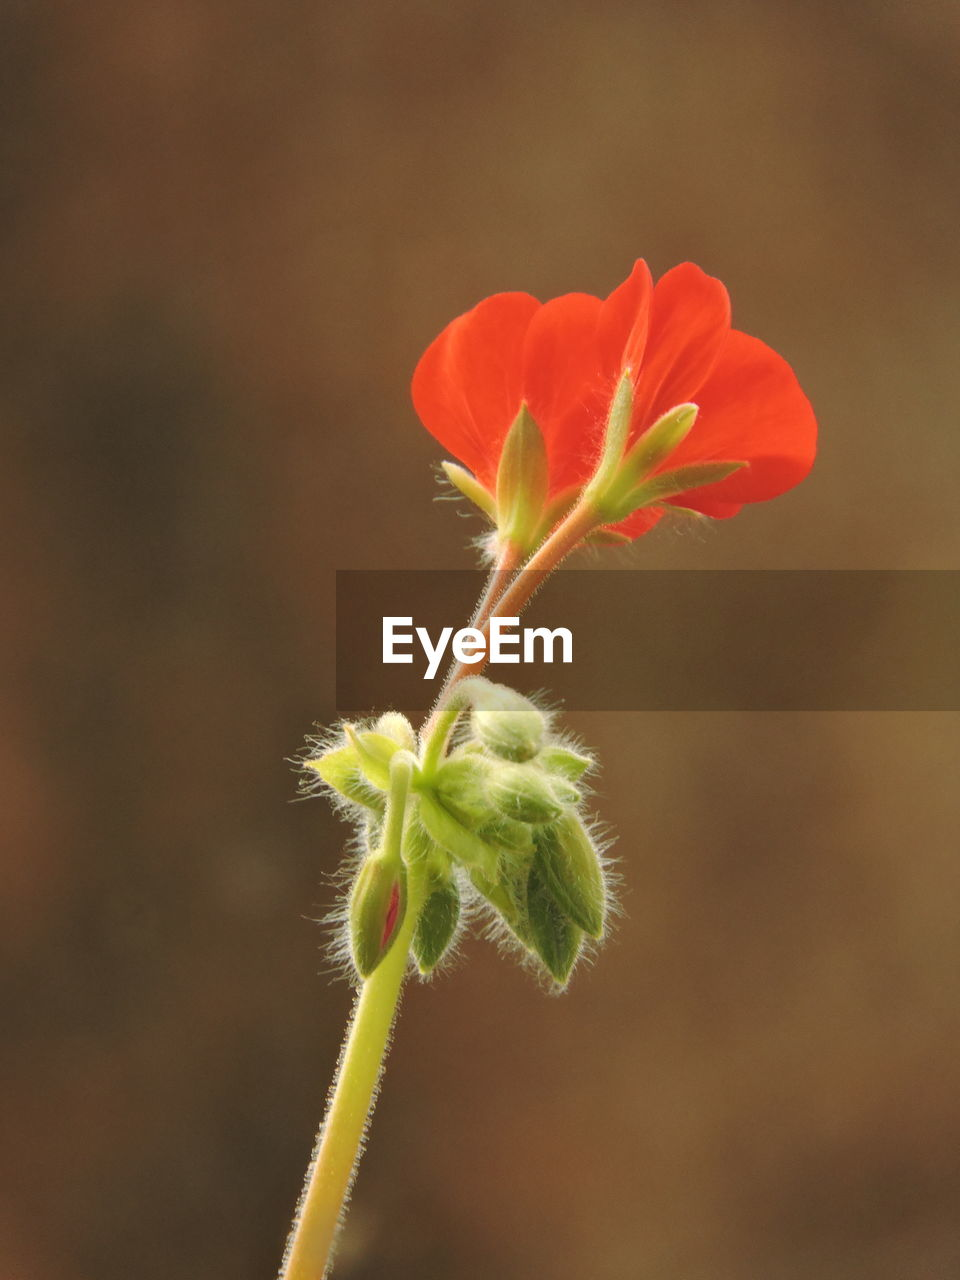 plant, flowering plant, flower, vulnerability, close-up, beauty in nature, growth, fragility, freshness, nature, focus on foreground, plant stem, no people, beginnings, new life, bud, petal, outdoors, inflorescence, flower head, sepal